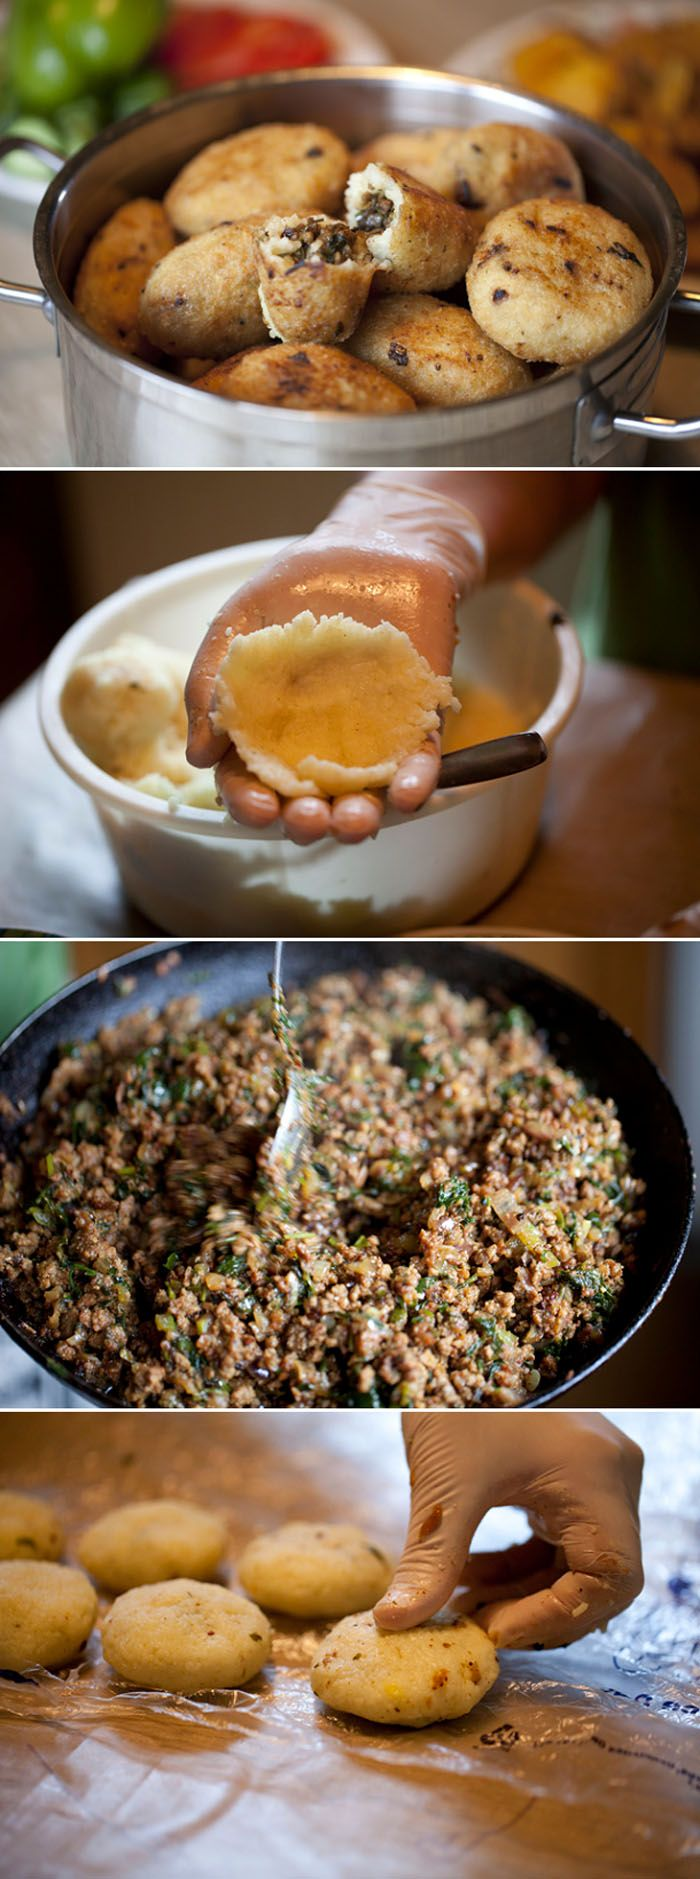 yummy ethnic street food bites for family weekend meal with salads or as an alternative take out , picnic or movie snacks Kubba | Iraqi Style Kibbeh #middleeasternfood #recipe